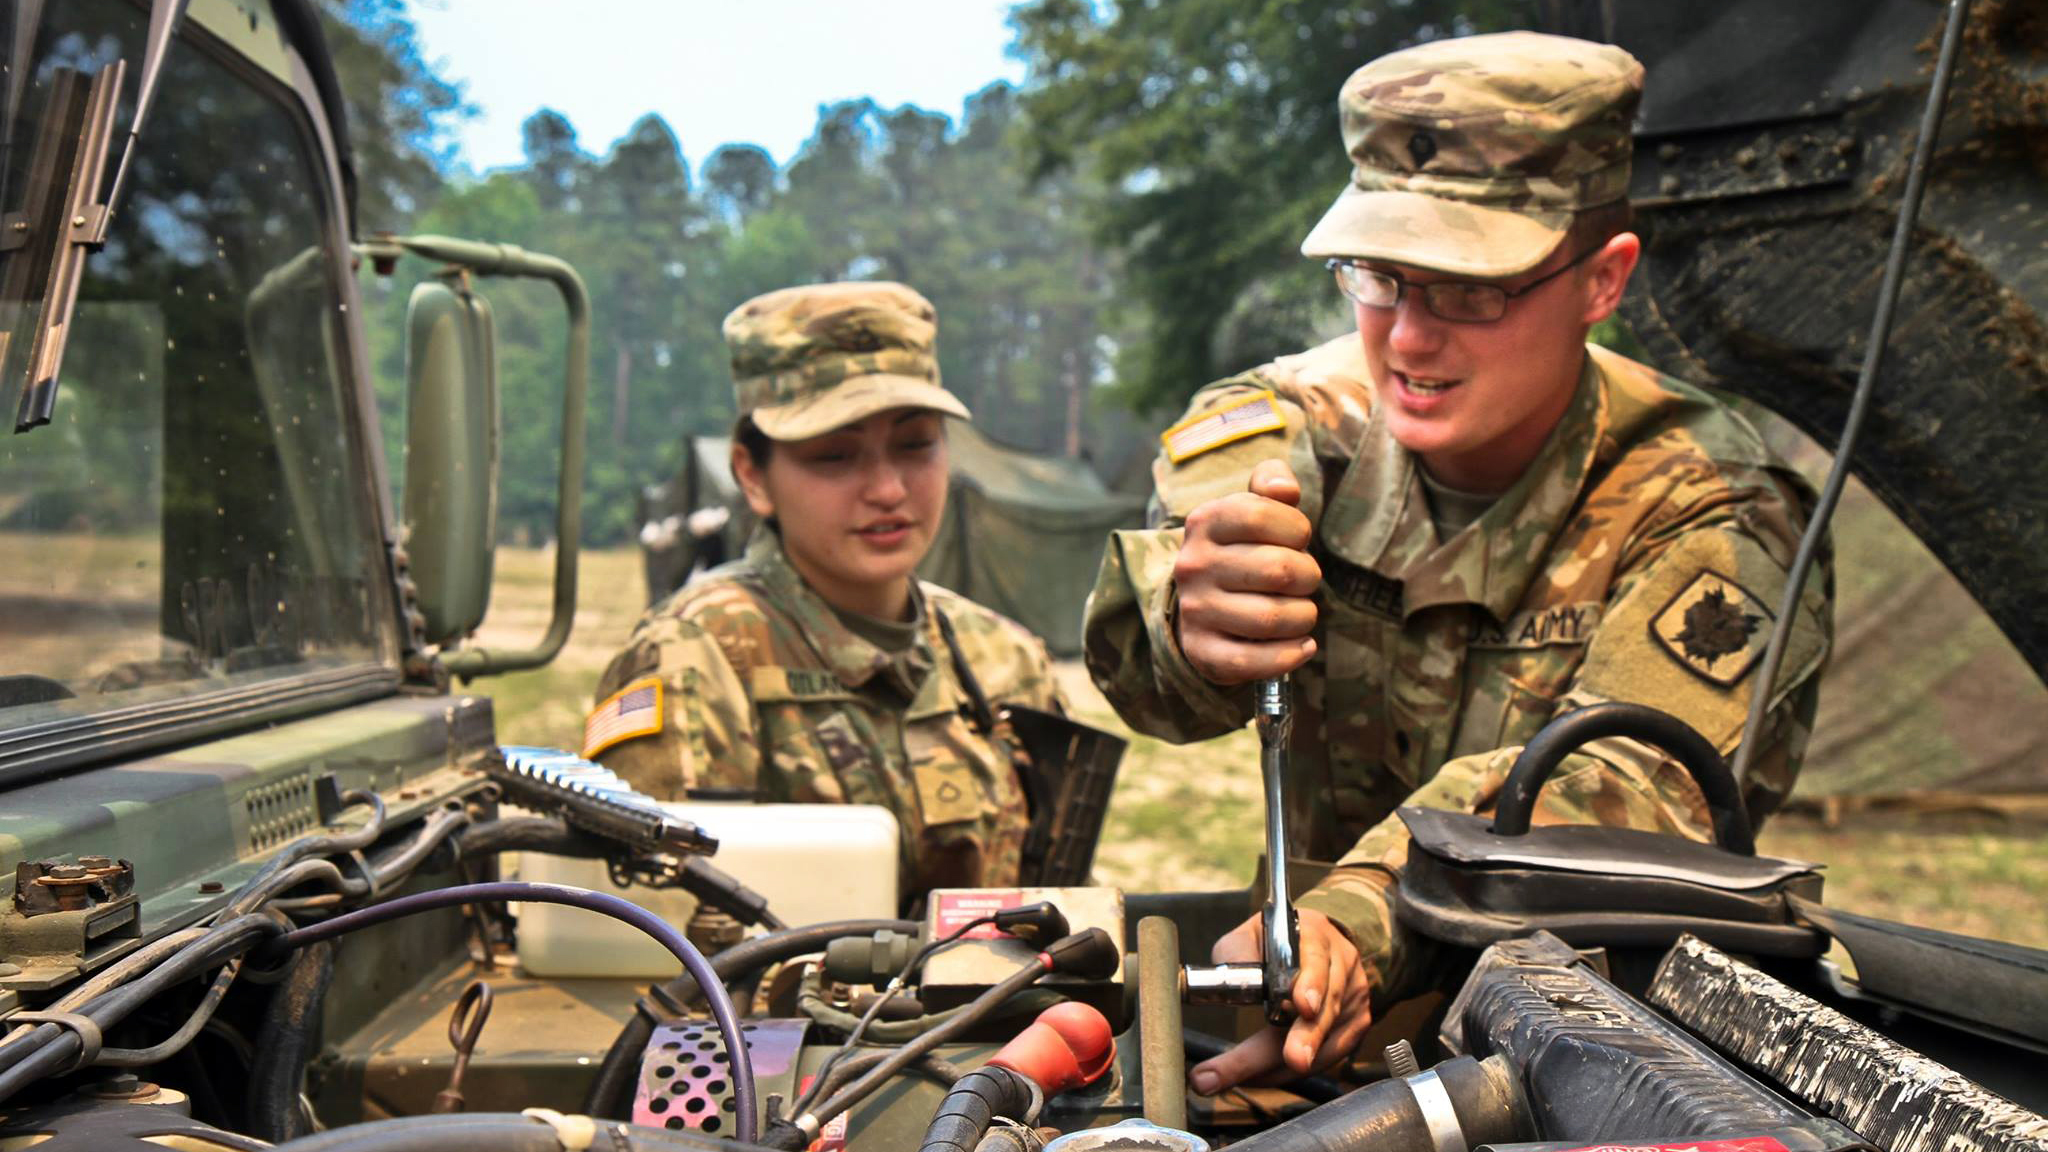 Soldiers maintaining equipment